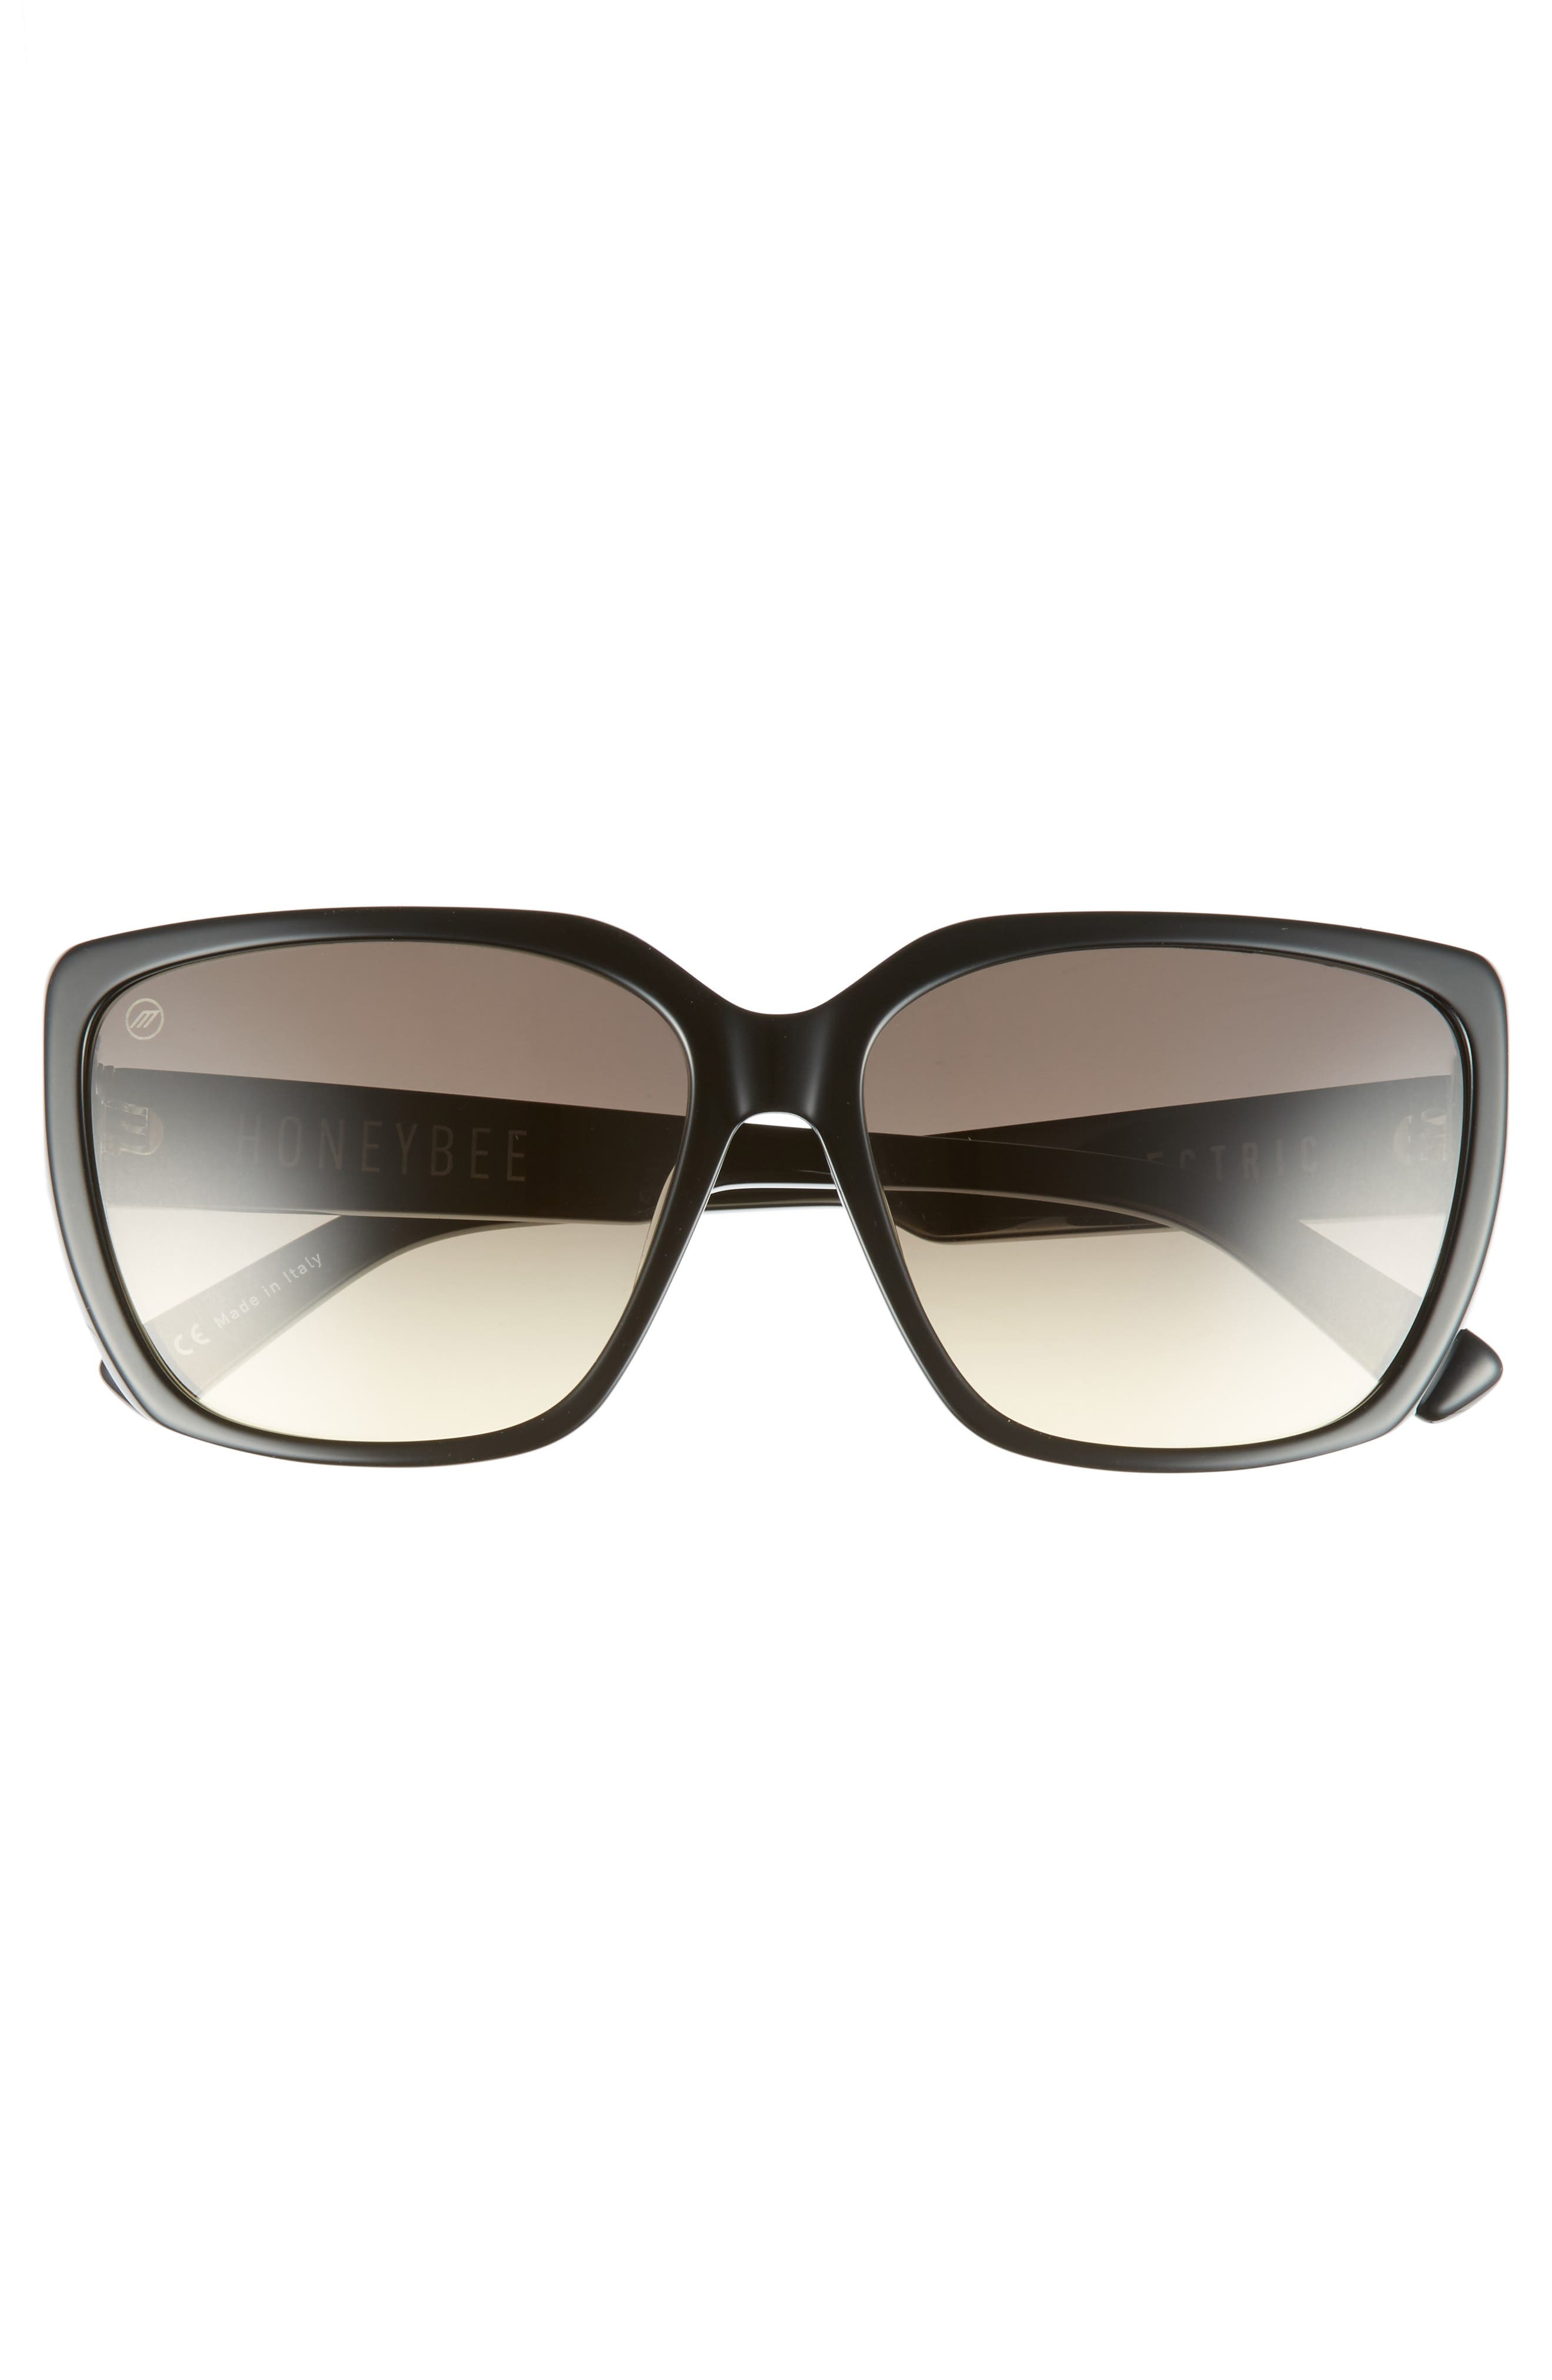 Honey Bee 60mm Mirrored Sunglasses,                             Alternate thumbnail 3, color,                             001